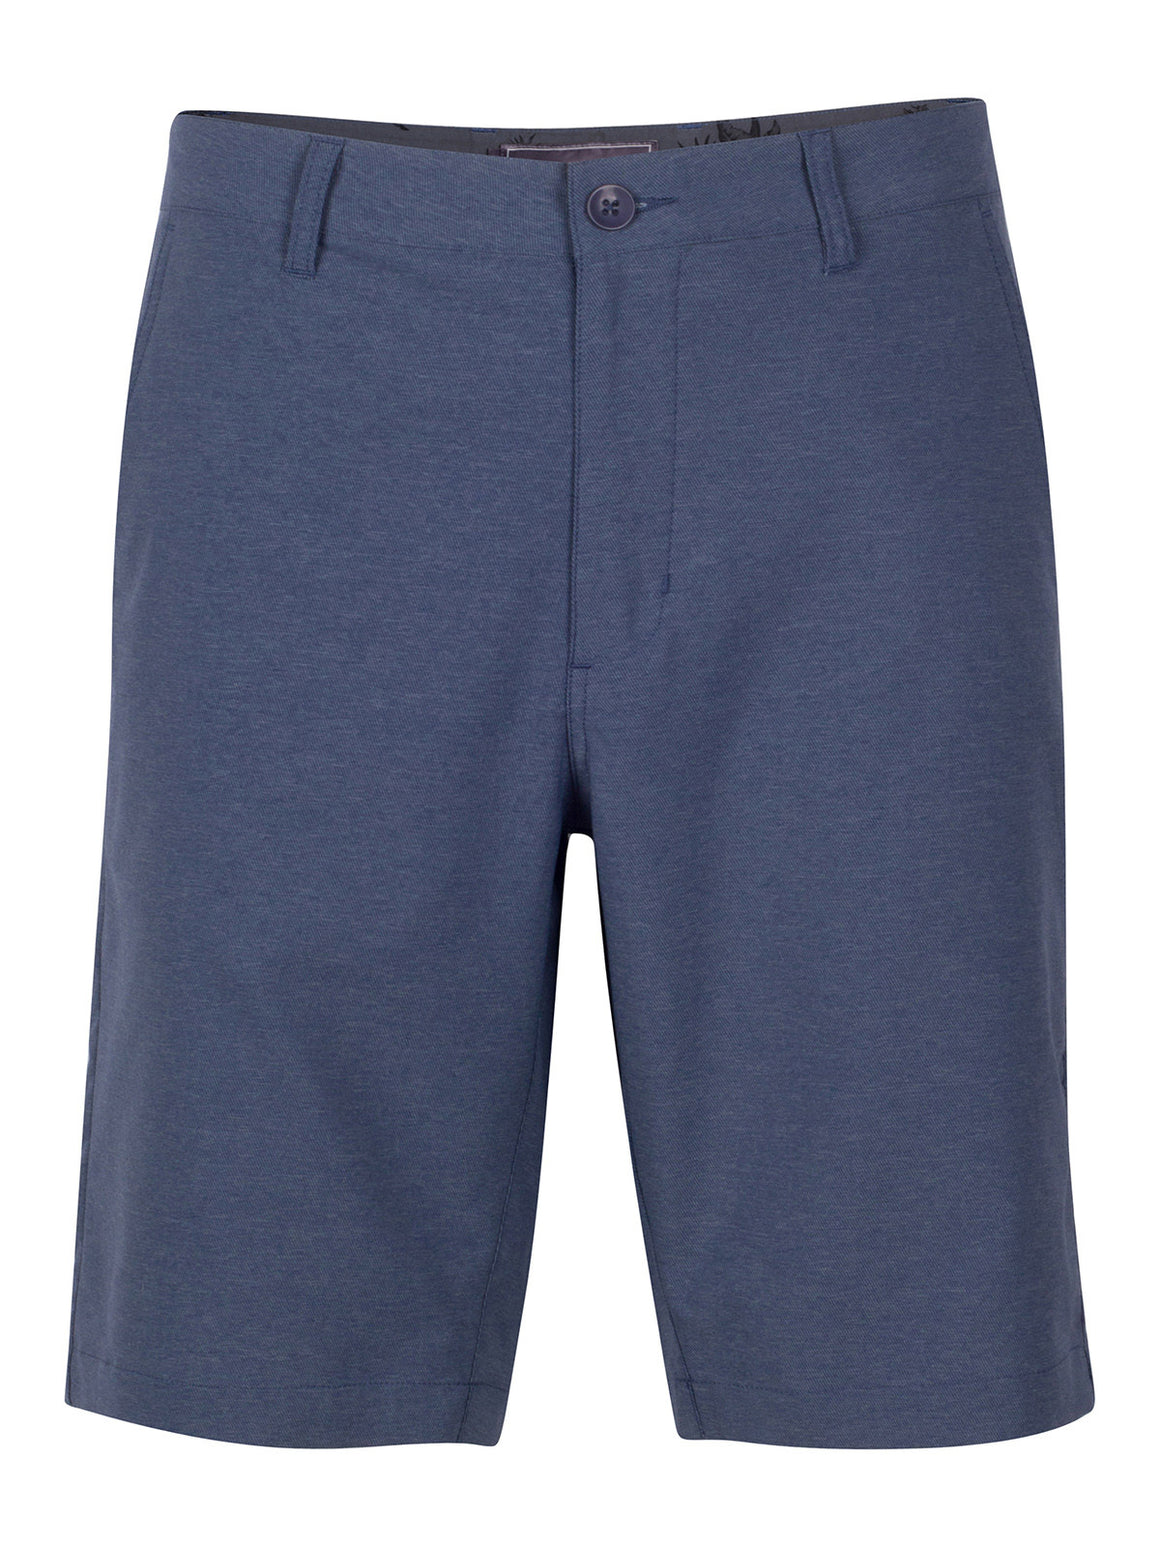 Trekker FIT101 Short - Dusty Blue